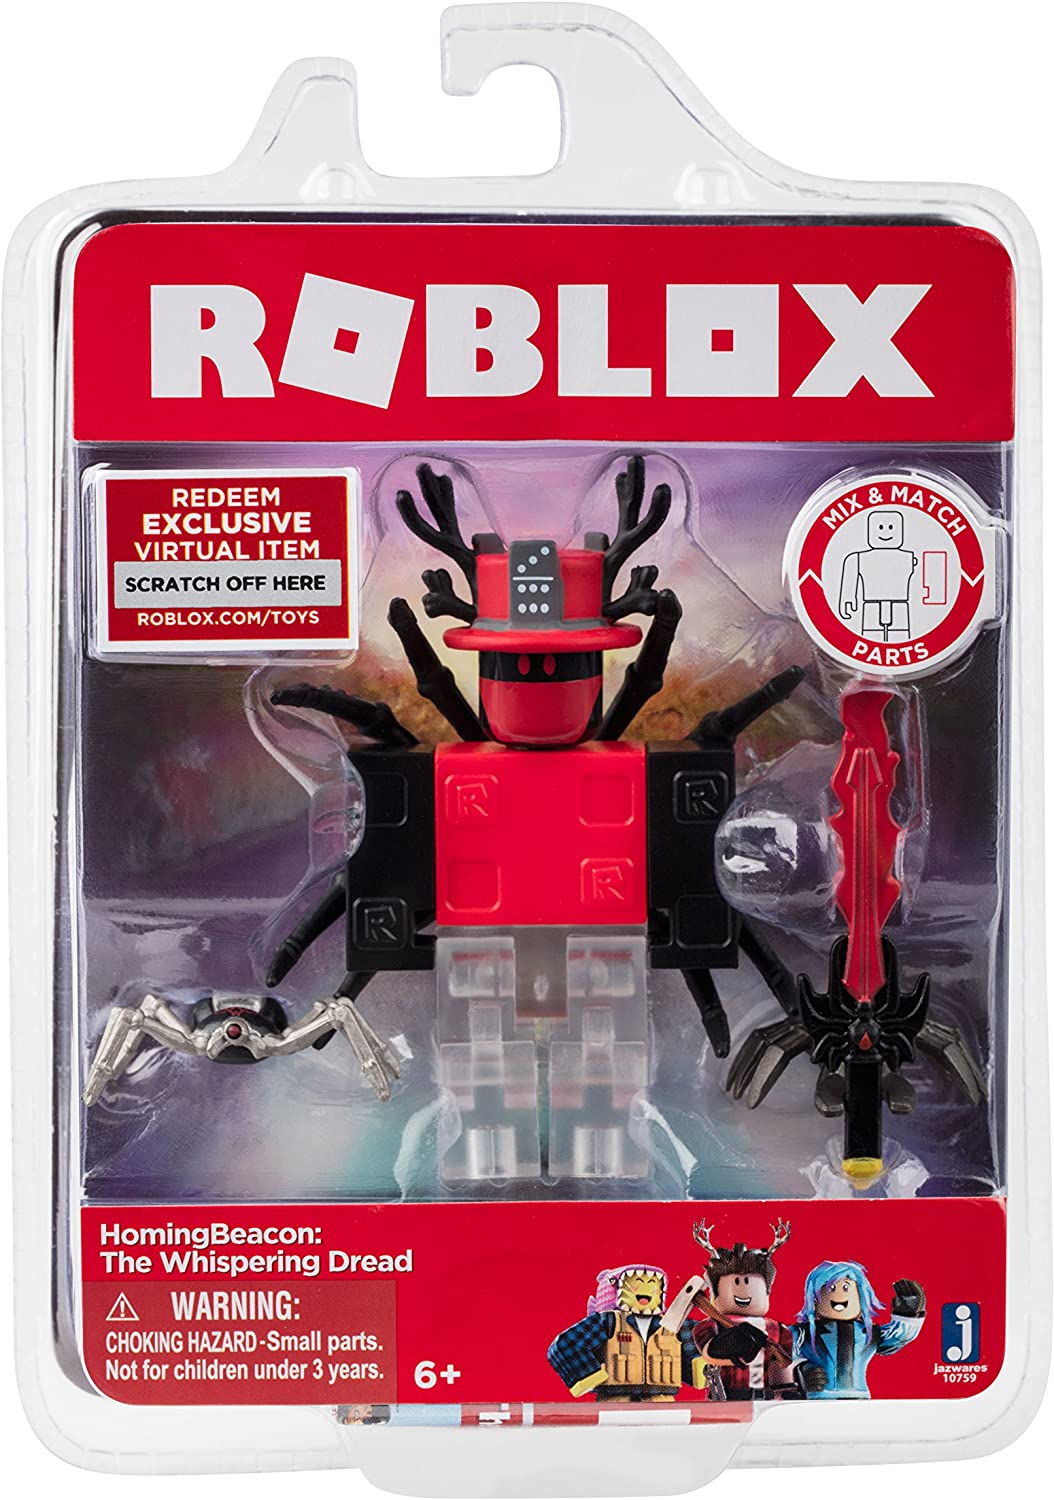 Roblox Song Id Lovely Roblox 4 Free Amazon Com Roblox Homingbeacon The Whispering Dread Figure Pack Toys Games